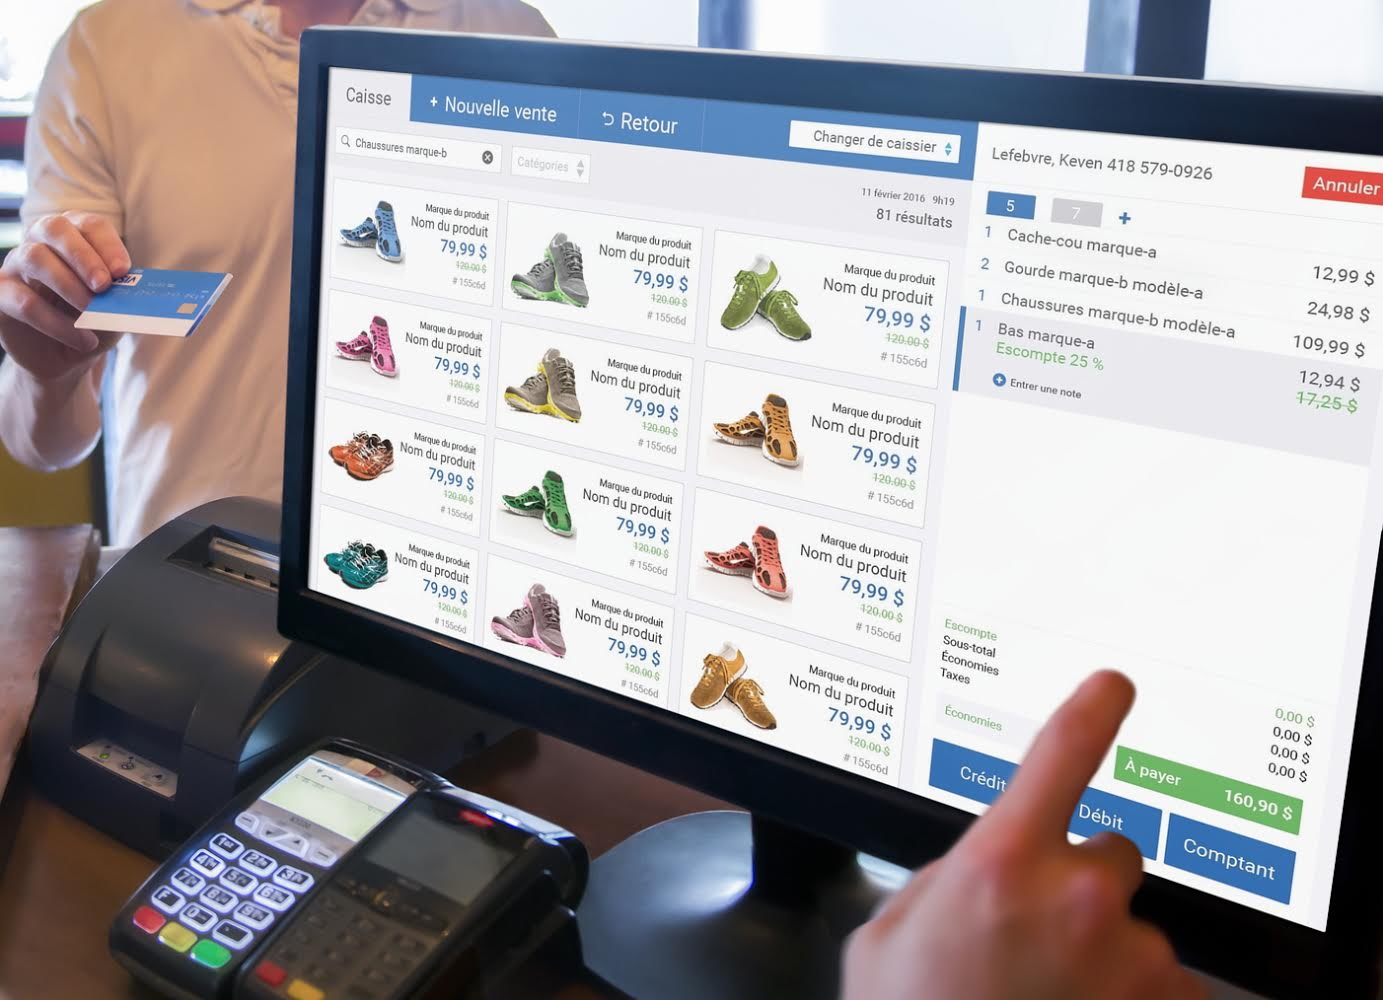 snipcart-pos-system-ecommerce-integration-store